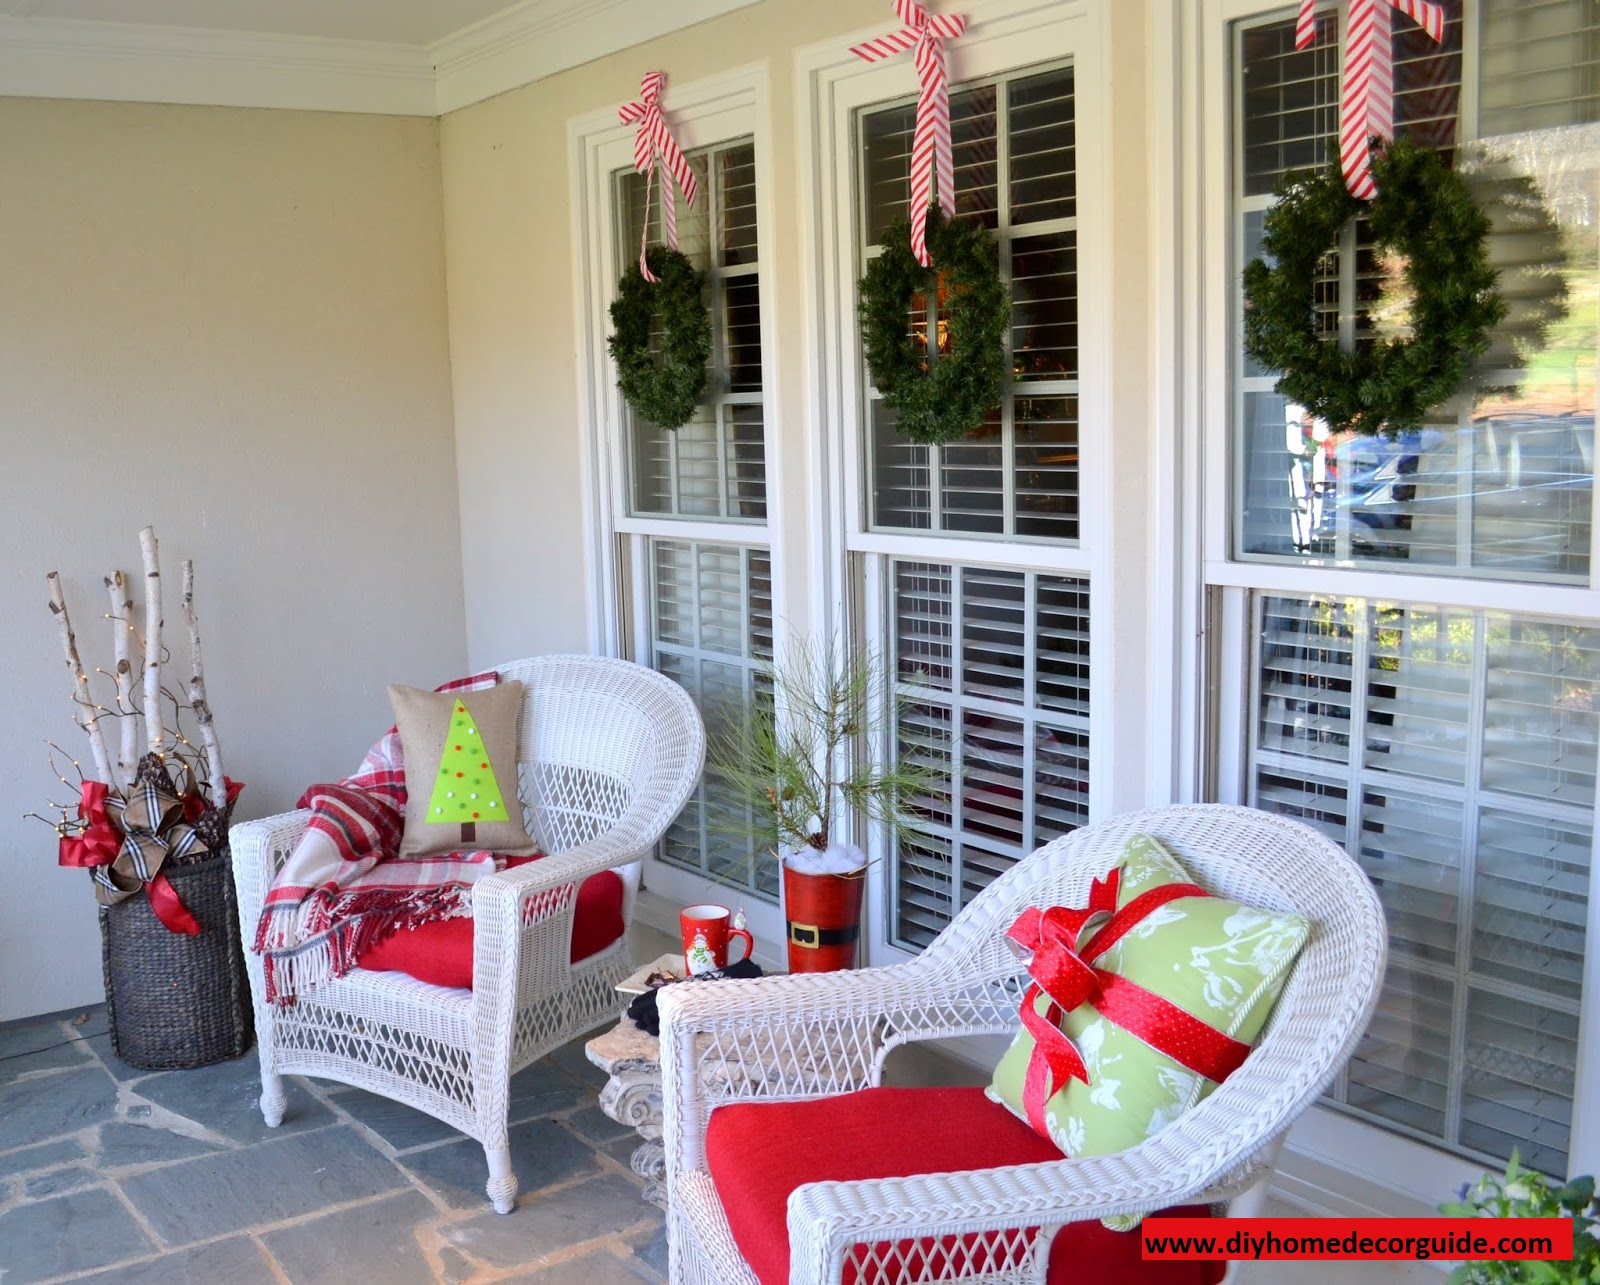 Outdoor Christmas Decor Ideas · Simple Outdoor Christmas Decorations